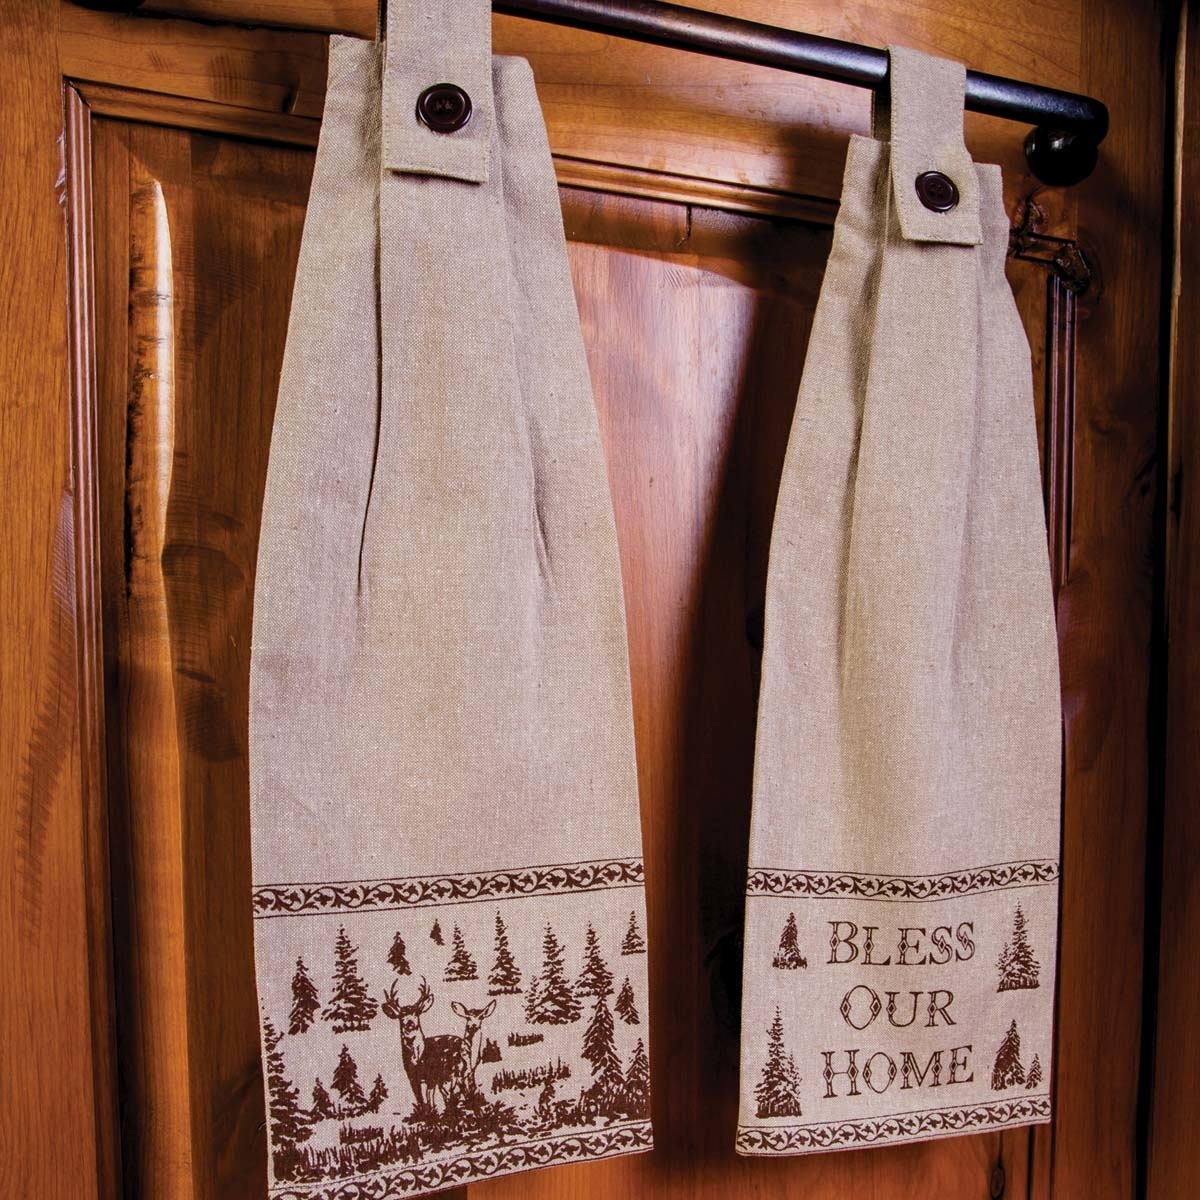 Seasonal Tabletop & Kitchen Woodland Christmas Button Loop Tan Kitchen Towel Set of 2 5b17f29d2a00e41be80d114a